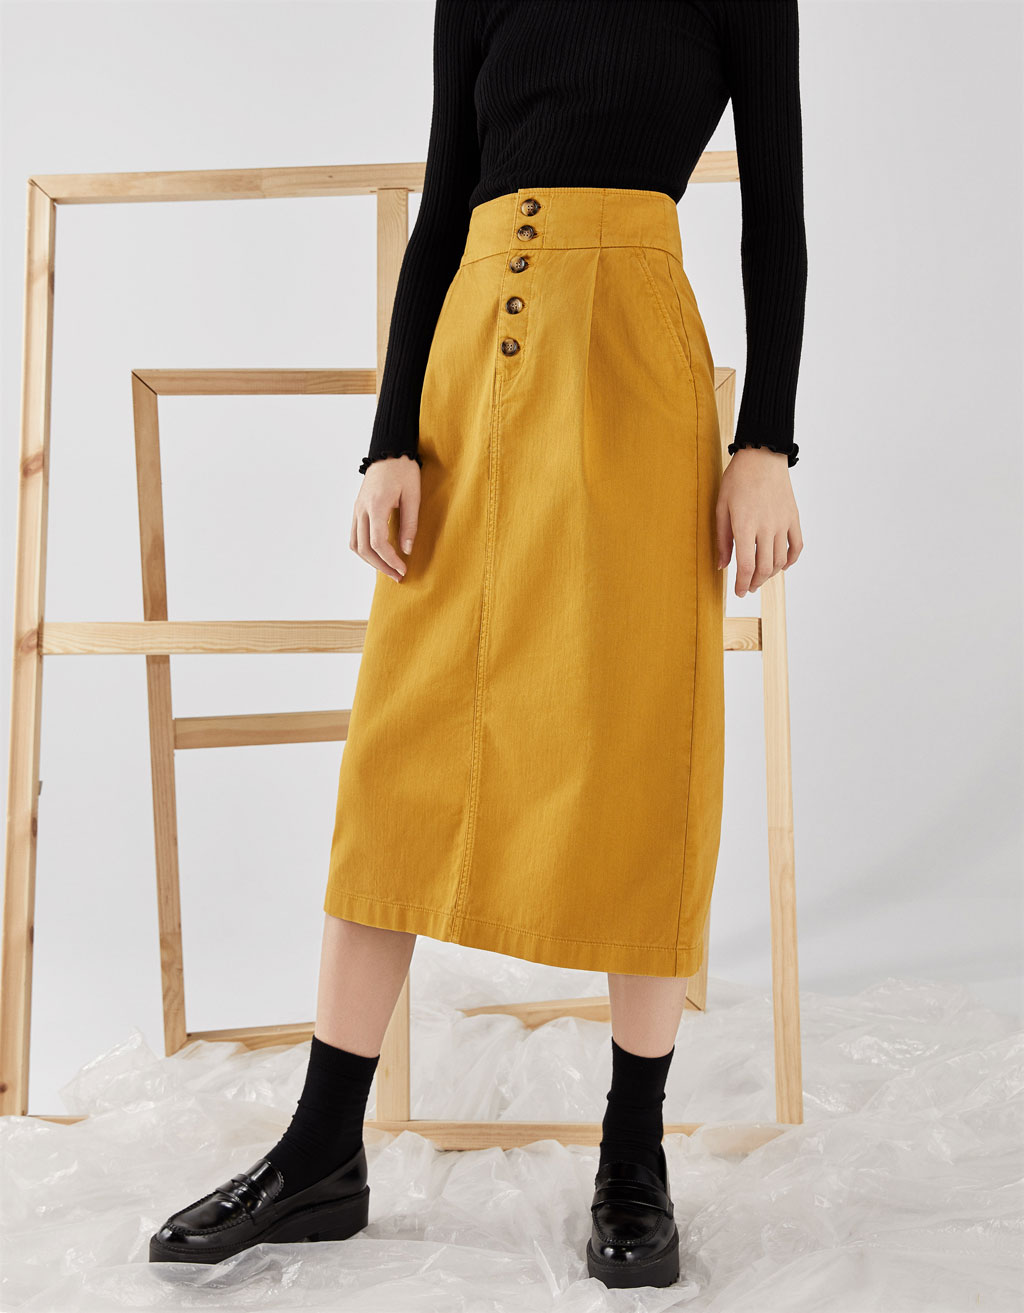 Midi skirt with buttons